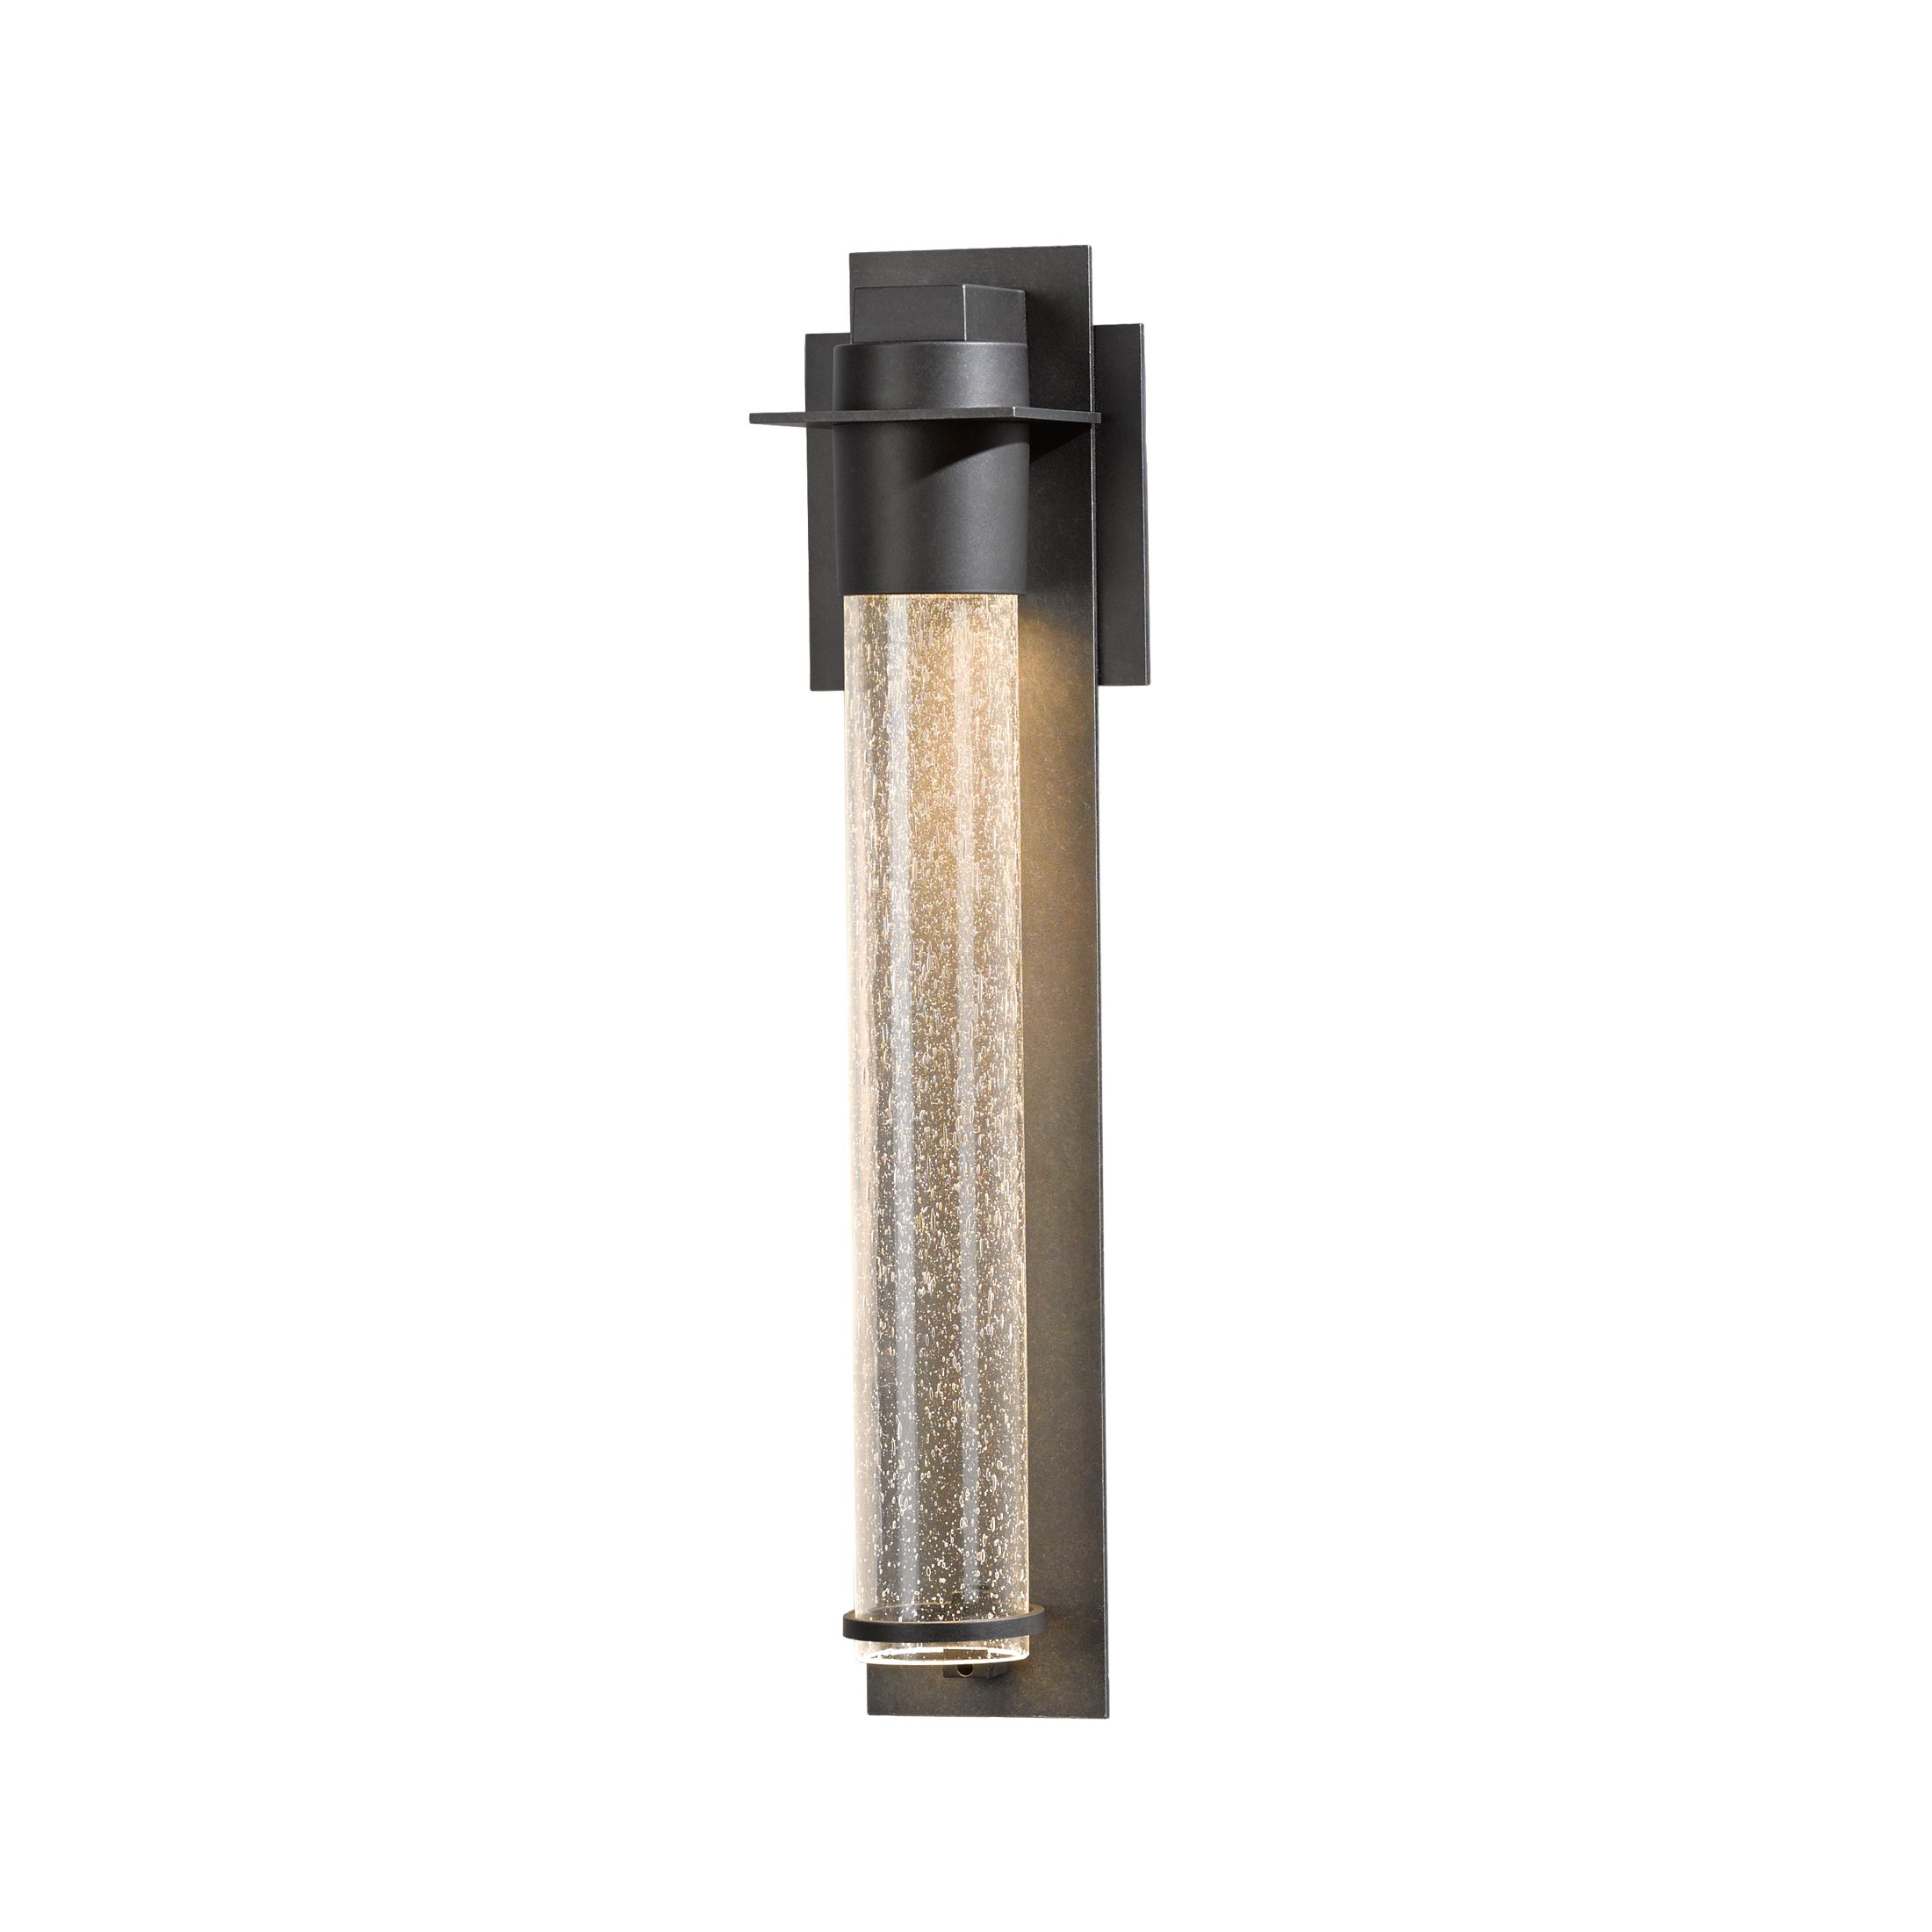 sconce lighting outdoor inman by house light savoy